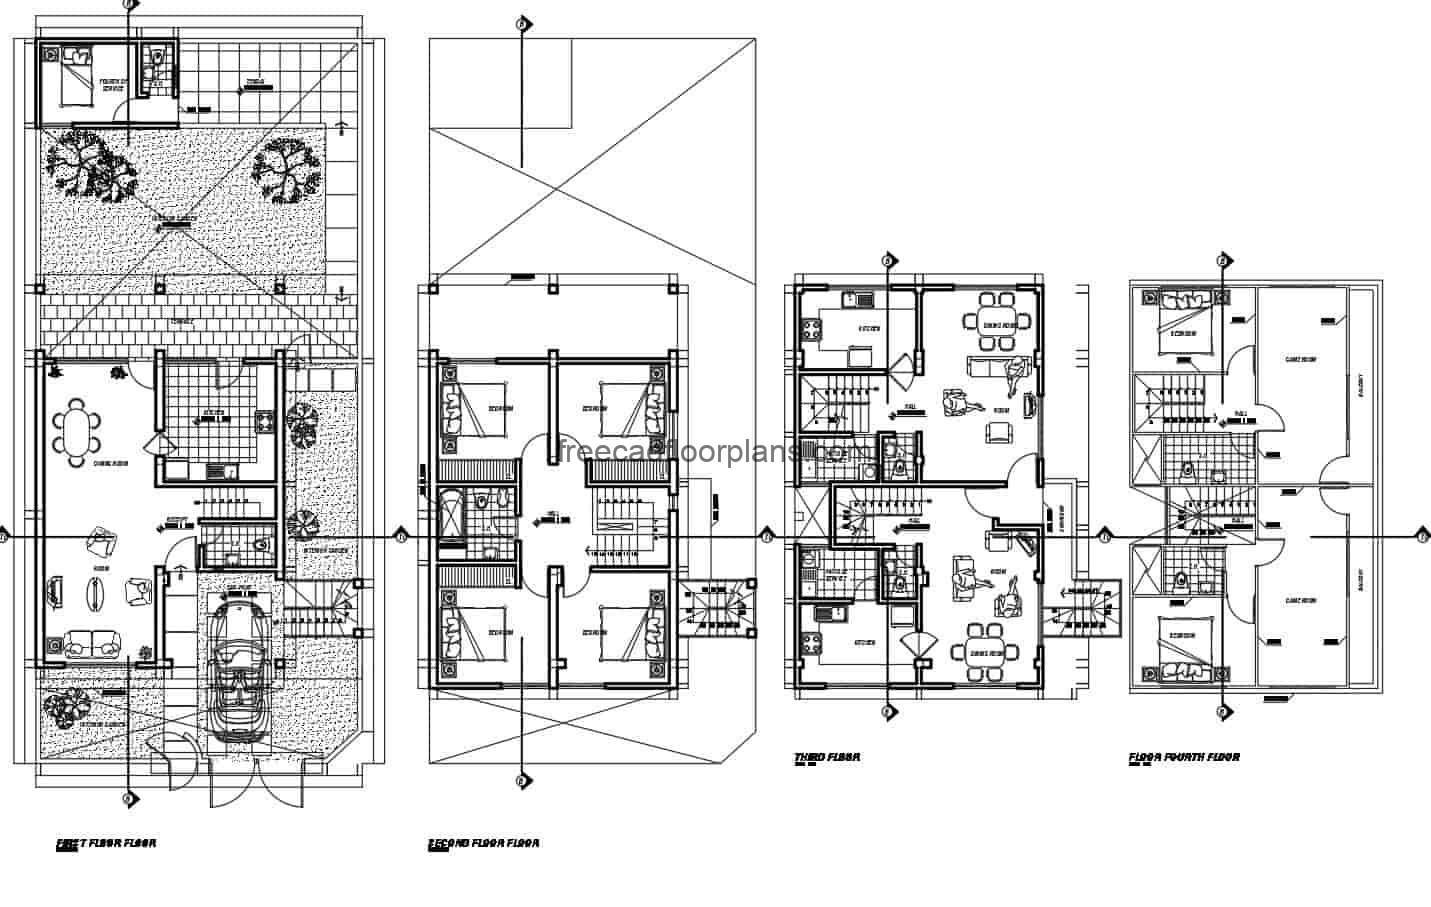 Family residence of four levels with six rooms in total, complete project in Autocad DWG format, first level garage for one vehicle, living room, half bath, kitchen, dining area, interior garden and service area. Second level with four rooms with shared bathroom, third and fourth level another independent residence with living room, kitchen, dining room, with two bedrooms and game rooms. 2D CAD plans for free download in DWG format